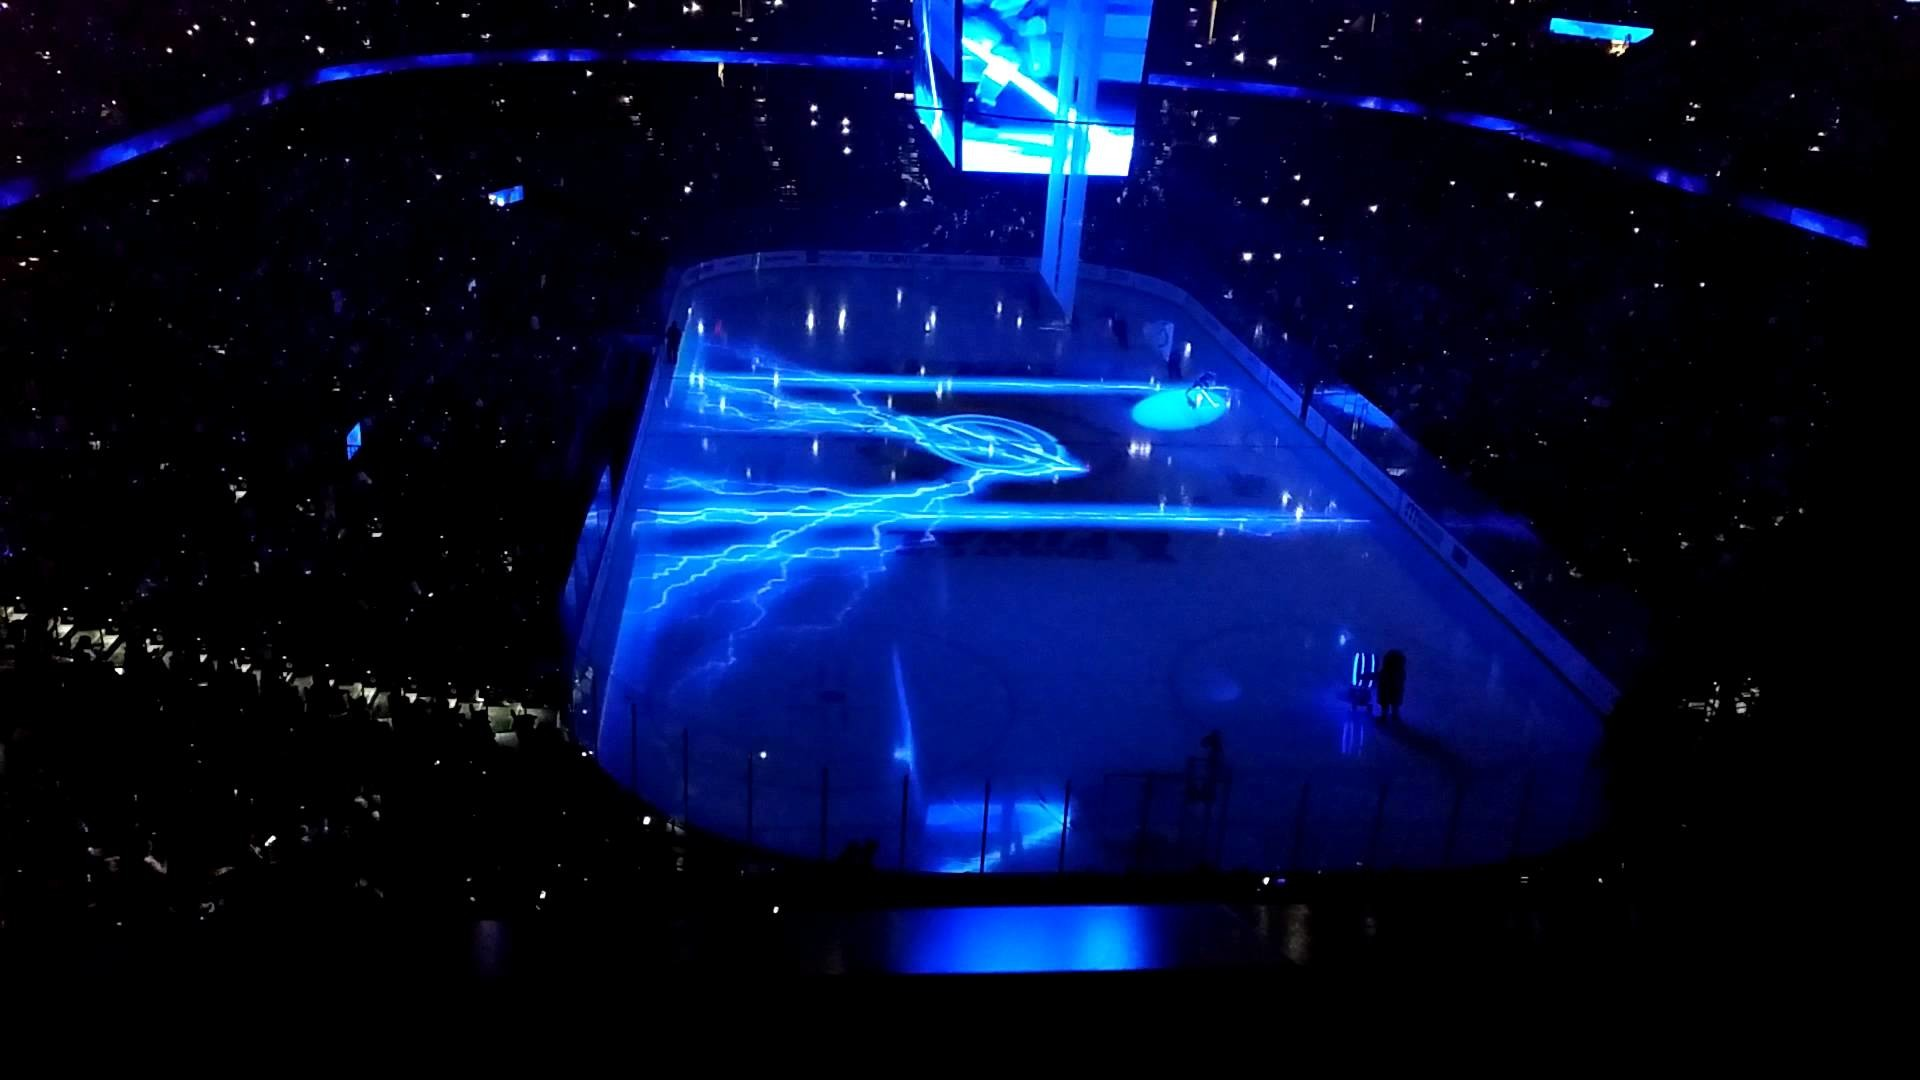 1920x1080 Tampa Bay Lightning Stanley Cup Finals Game 1 Intro